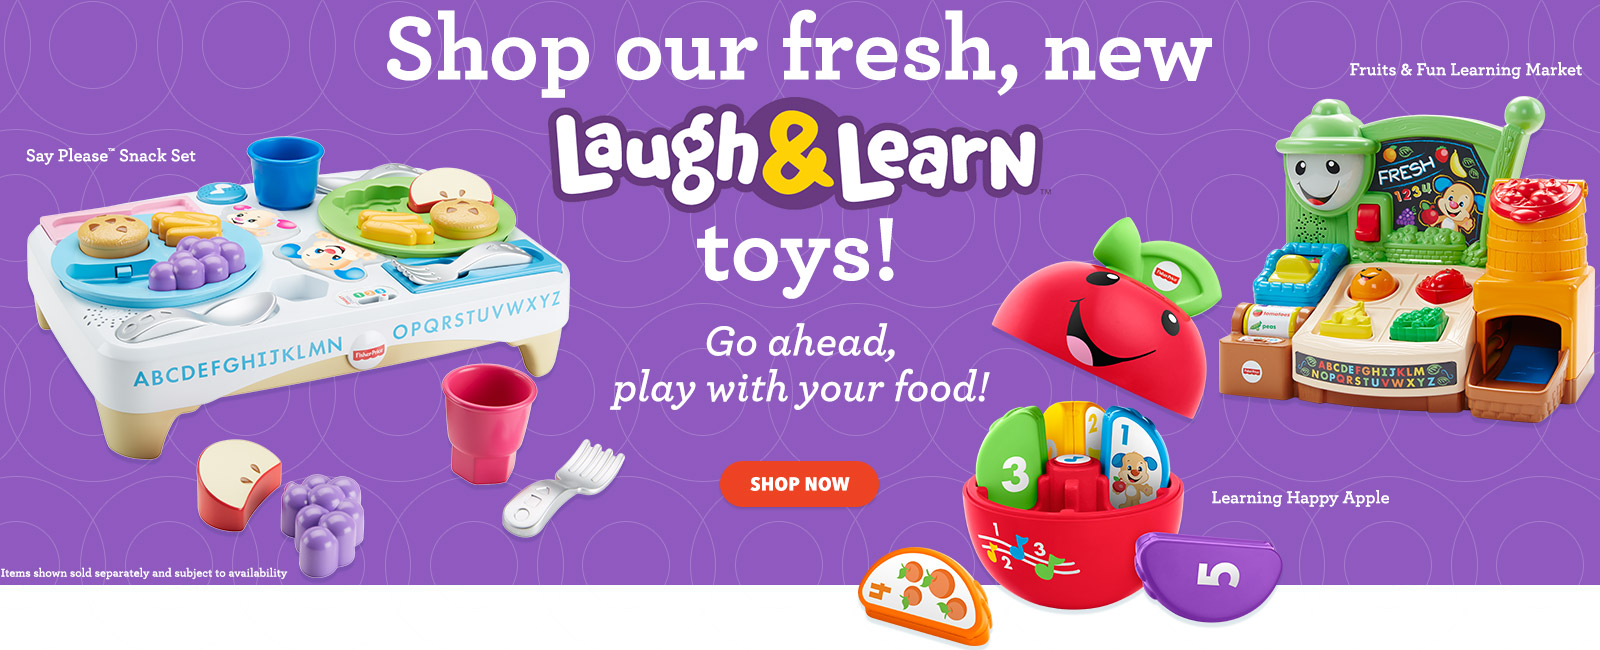 Shop our fresh, new Laugh & Learn toys!